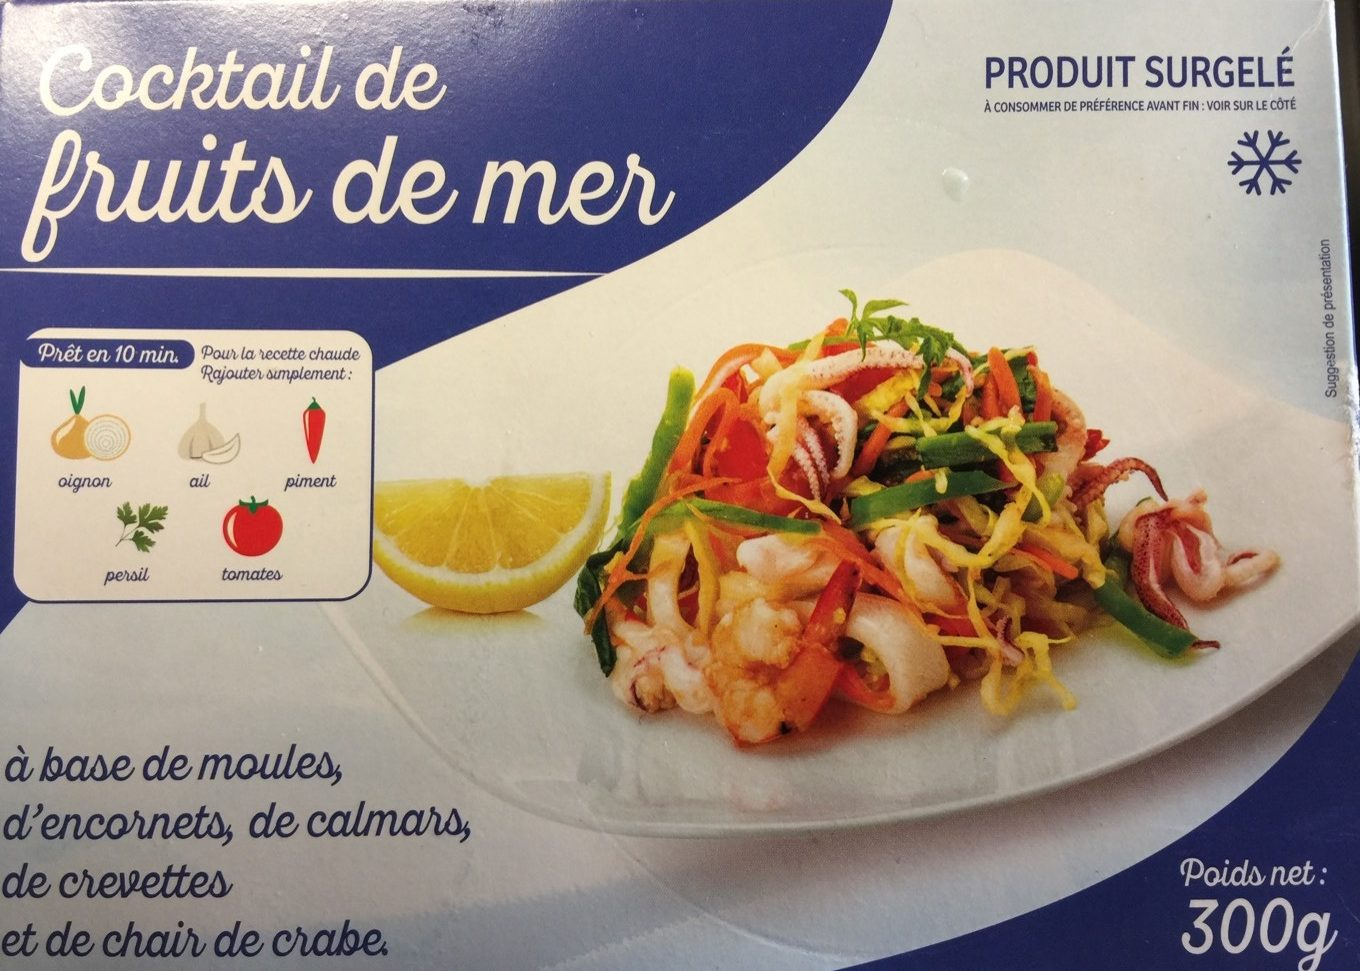 Cocktail de fruits de mer auchan - Cuisiner cocktail de fruits de mer surgele ...